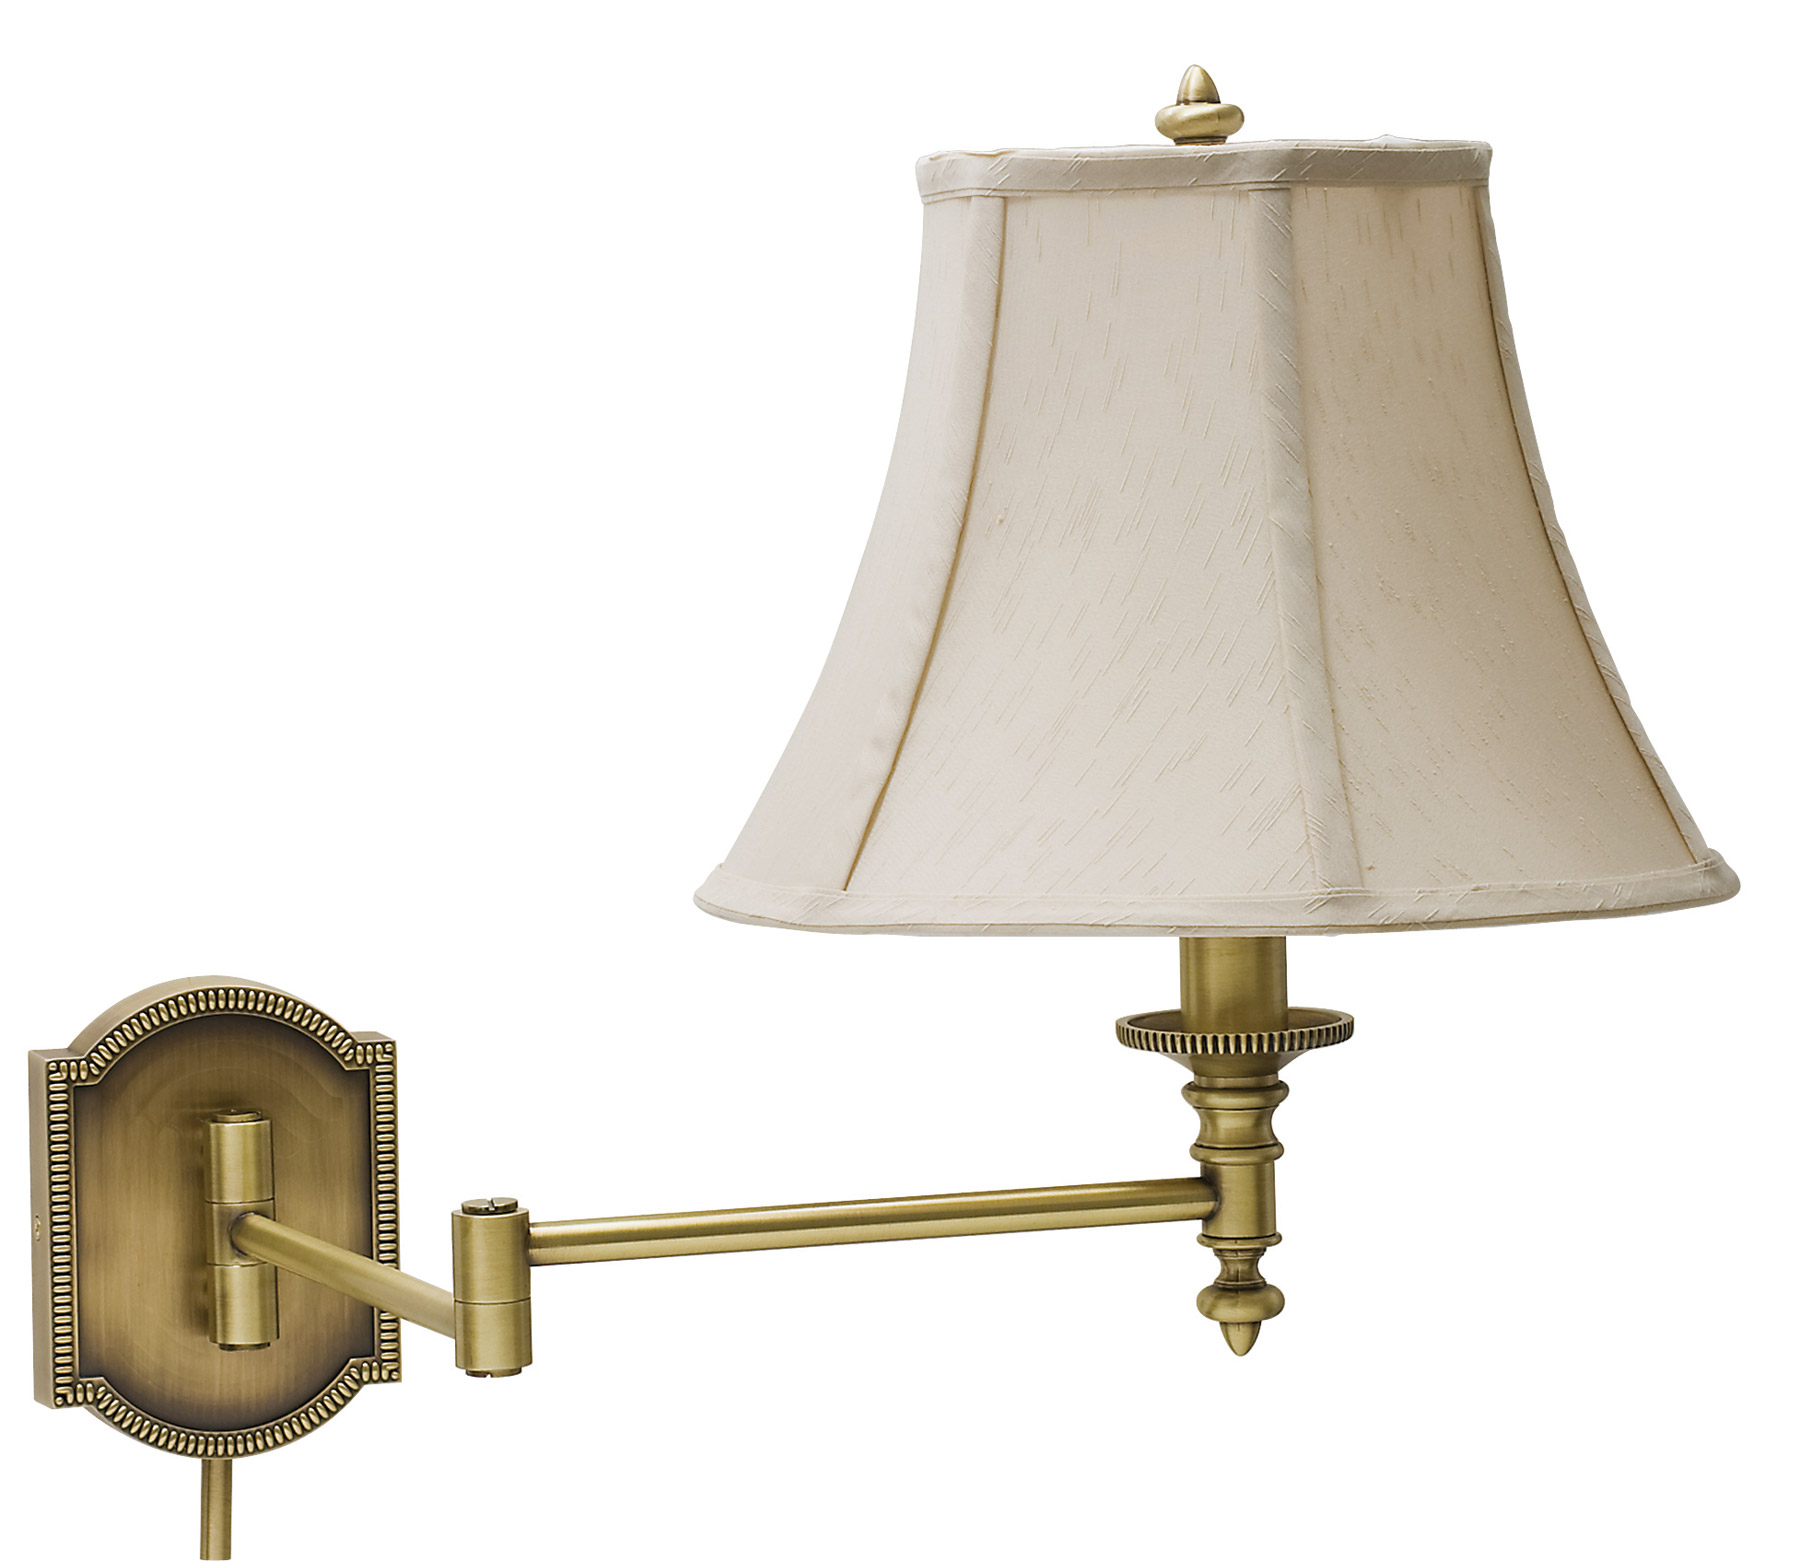 house of troy ws761 ab bead swing arm wall lamp. Black Bedroom Furniture Sets. Home Design Ideas